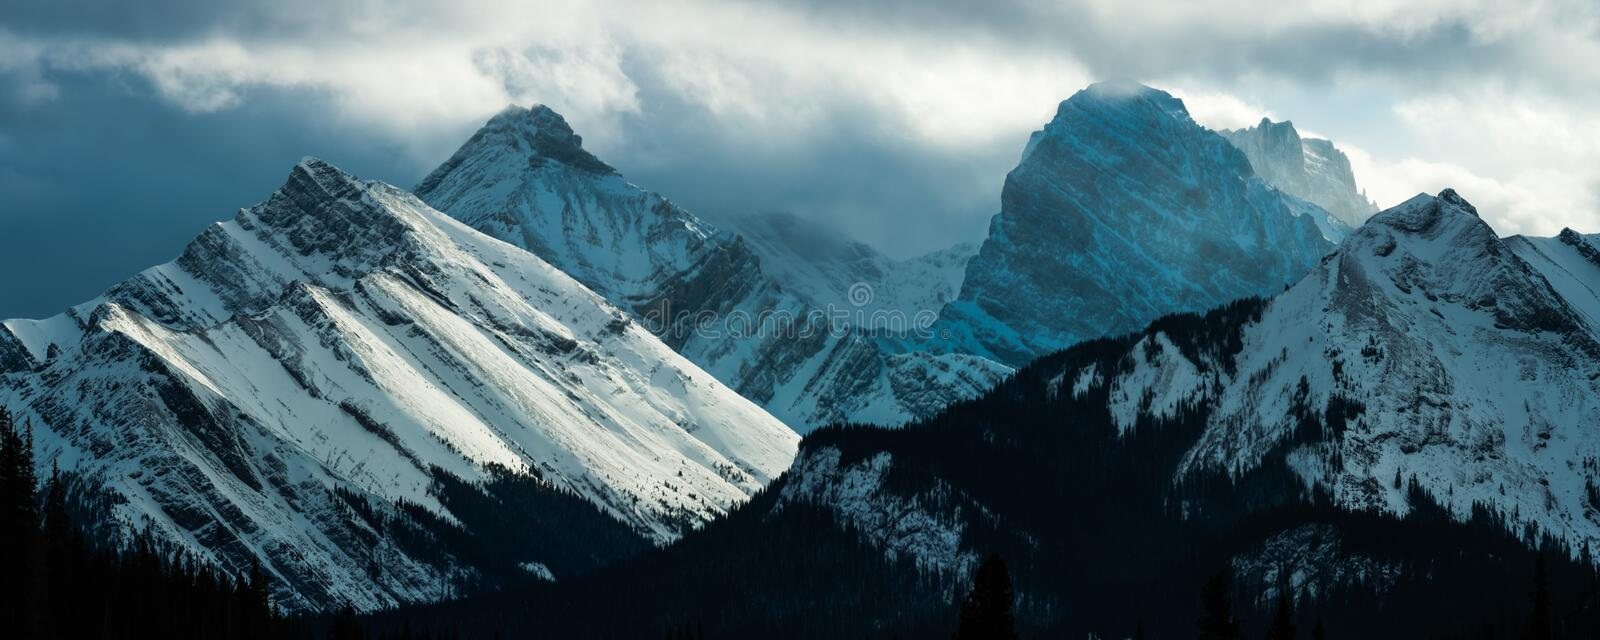 Stormy Mountain Light royalty free stock photo